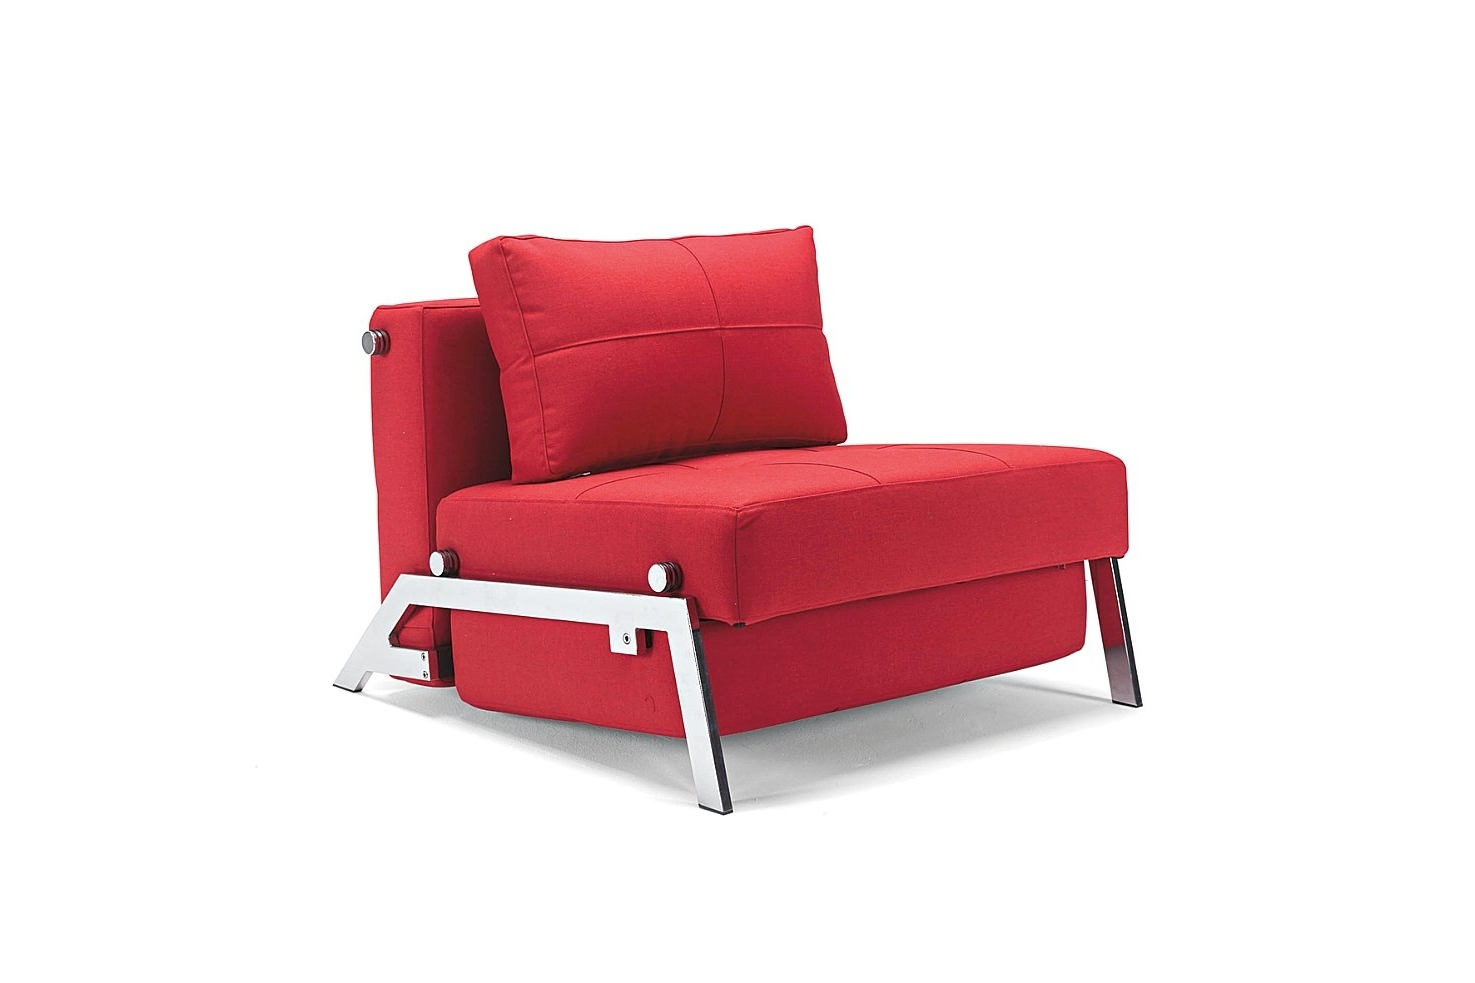 Choose A Sofa With Endless Possibilities Pertaining To Famous Single Seat Sofa Chairs (View 15 of 15)